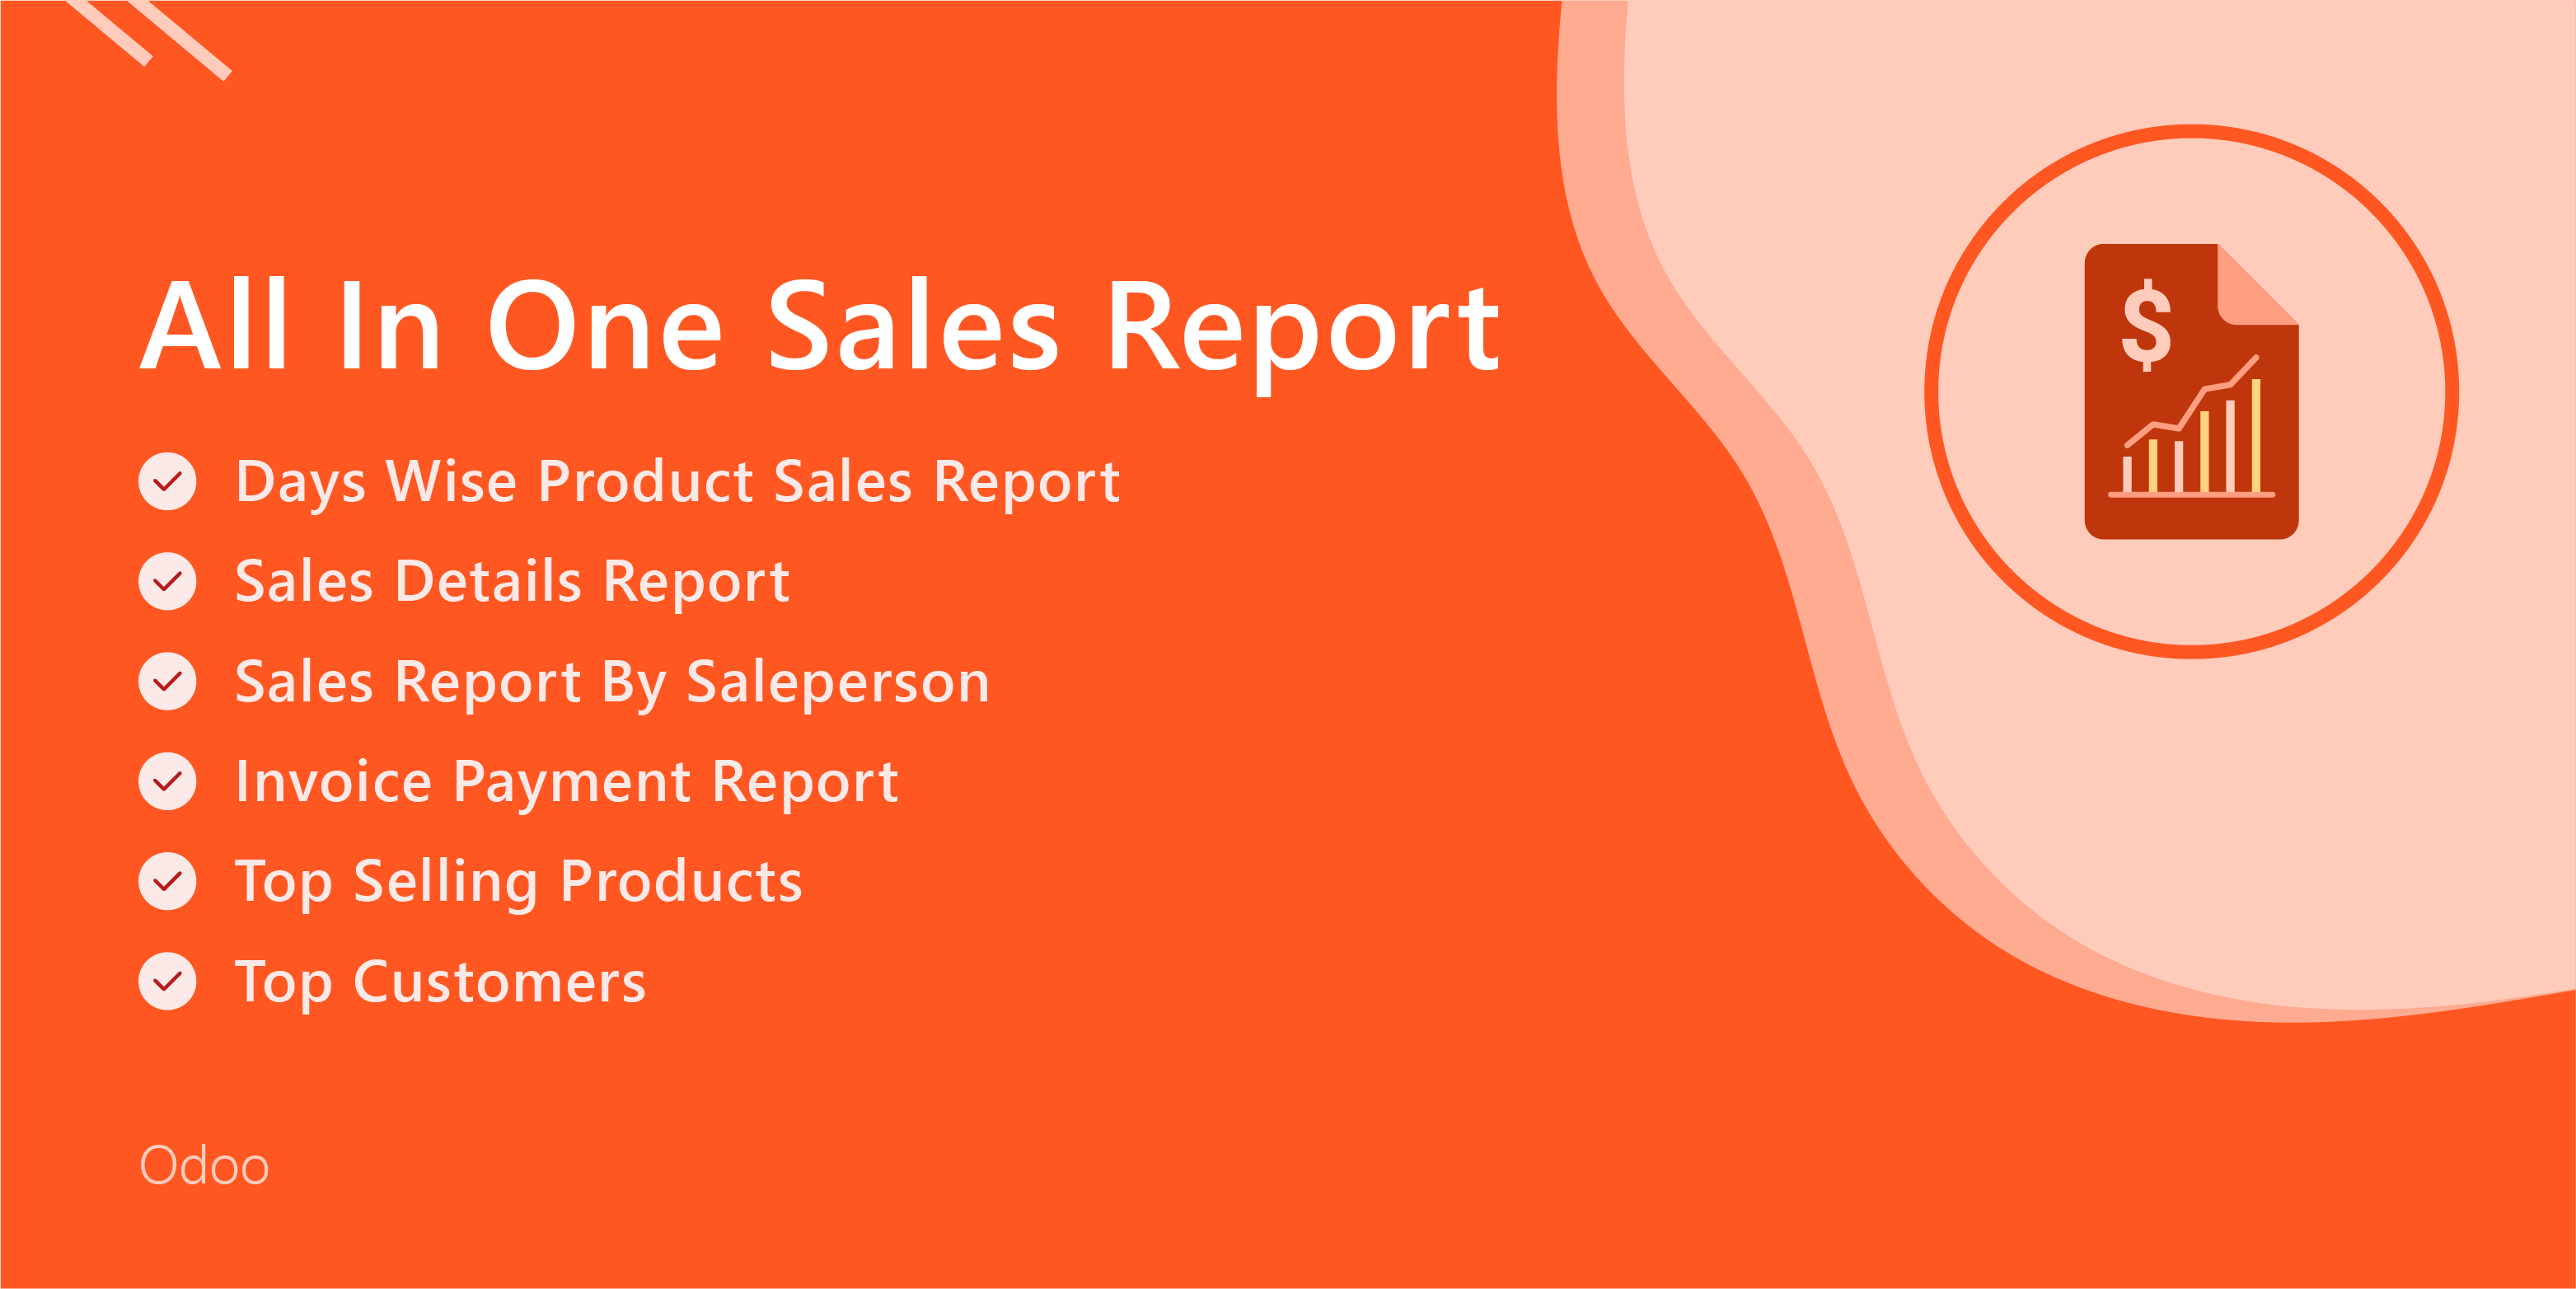 All In One Sales Report